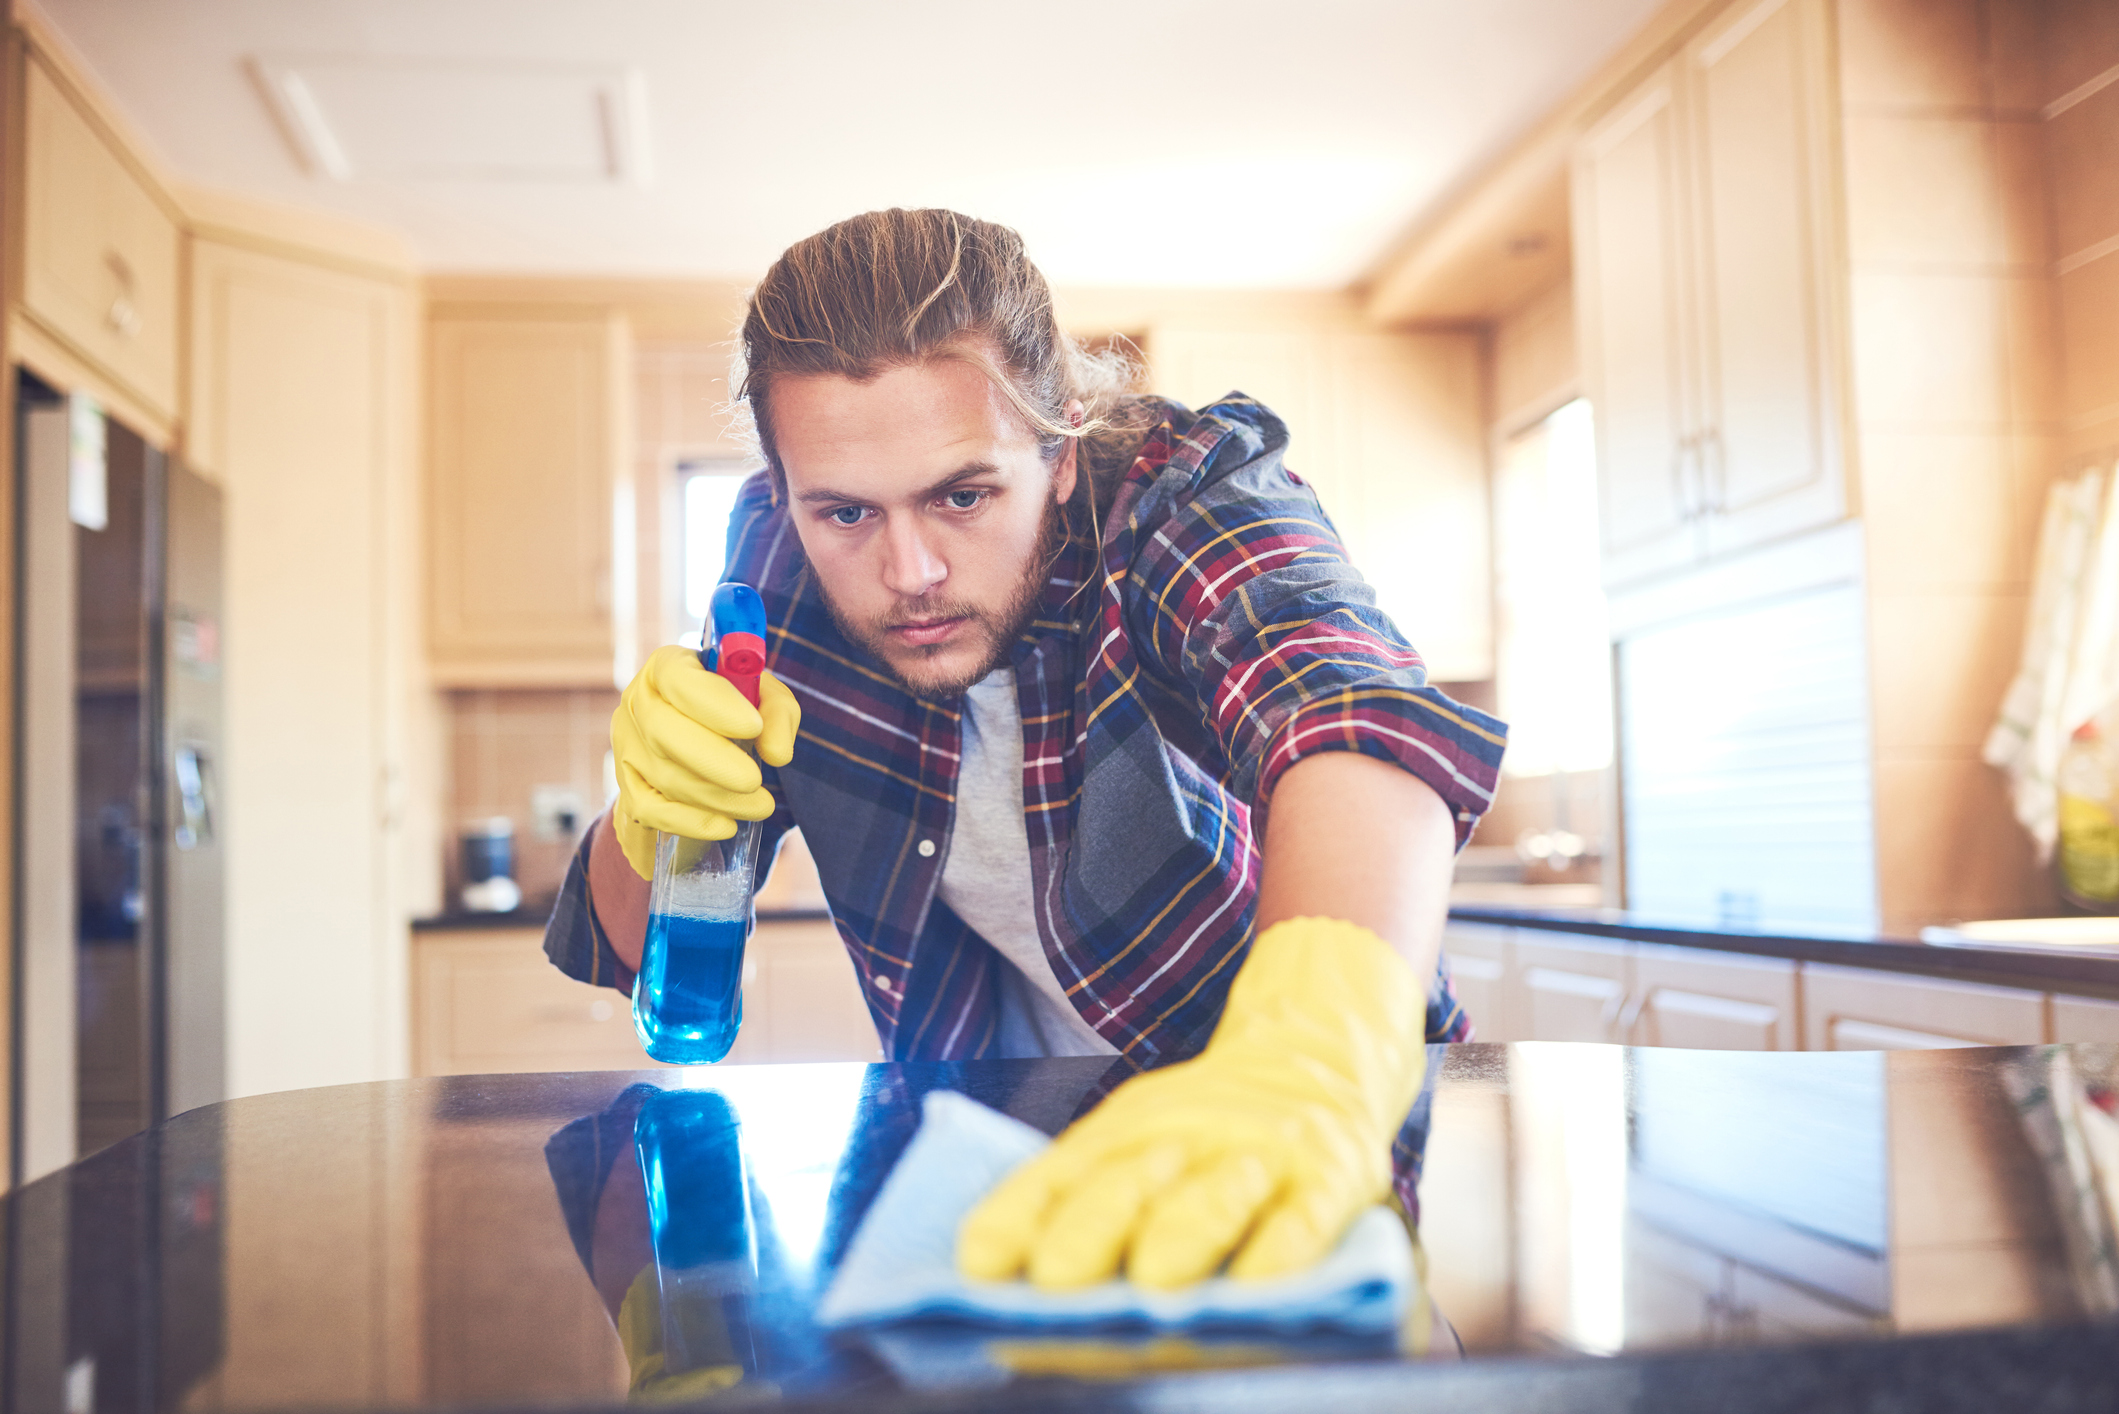 Cleaning your home (and hands) during COVID-19